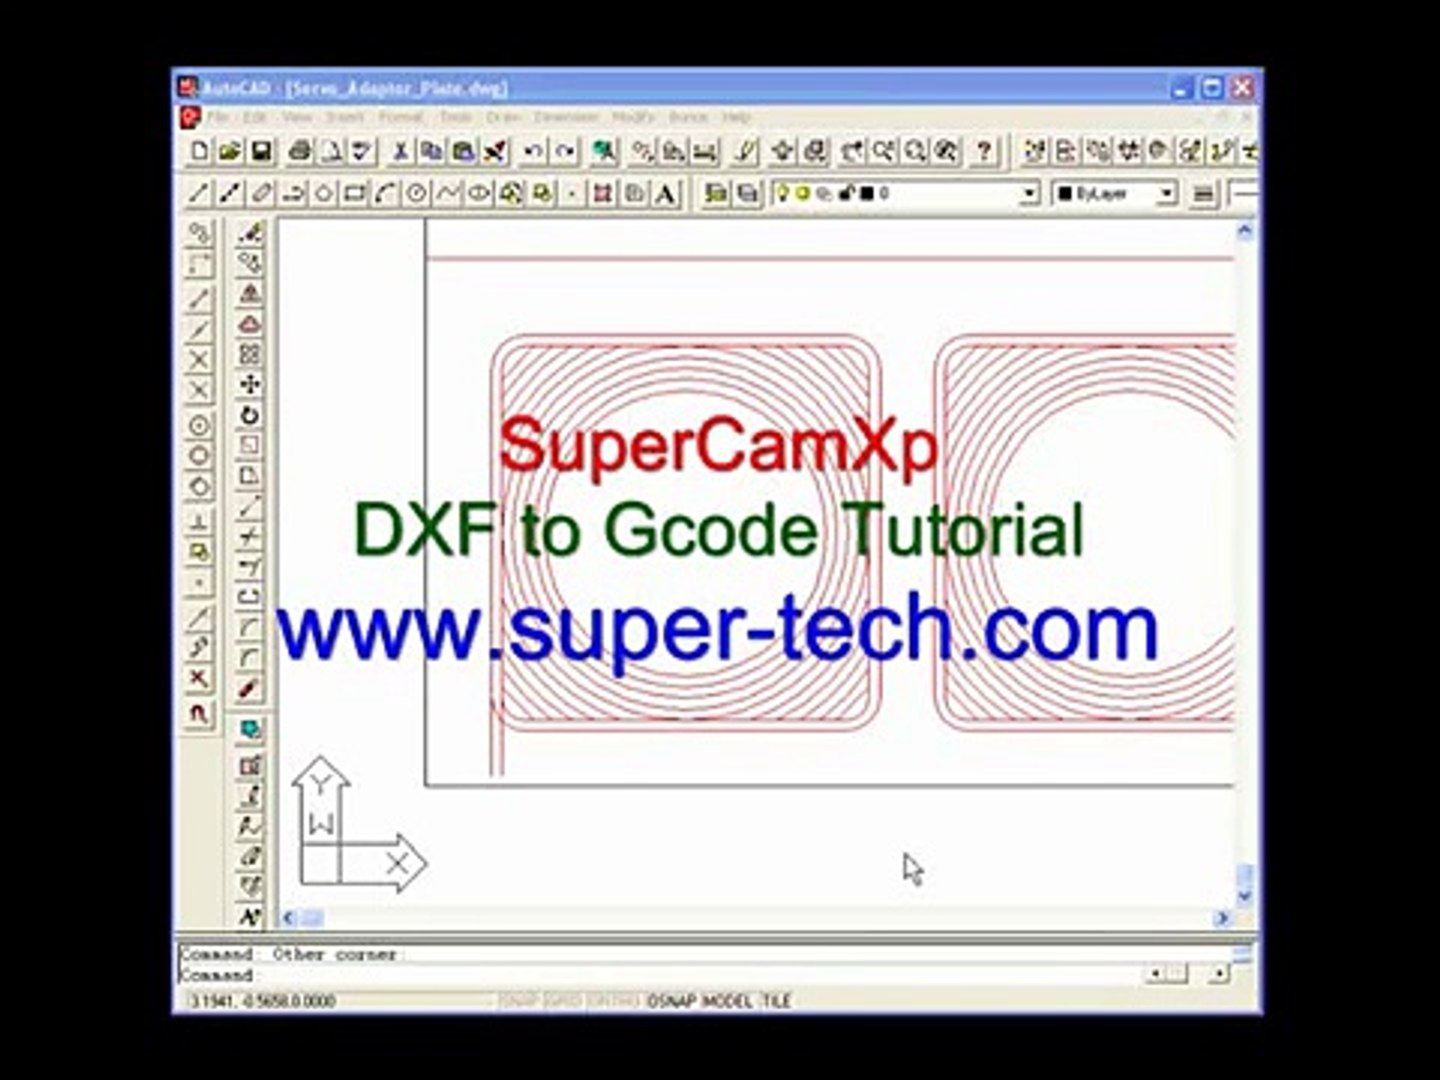 DXF to G-code File SuperCamXp Tutorial